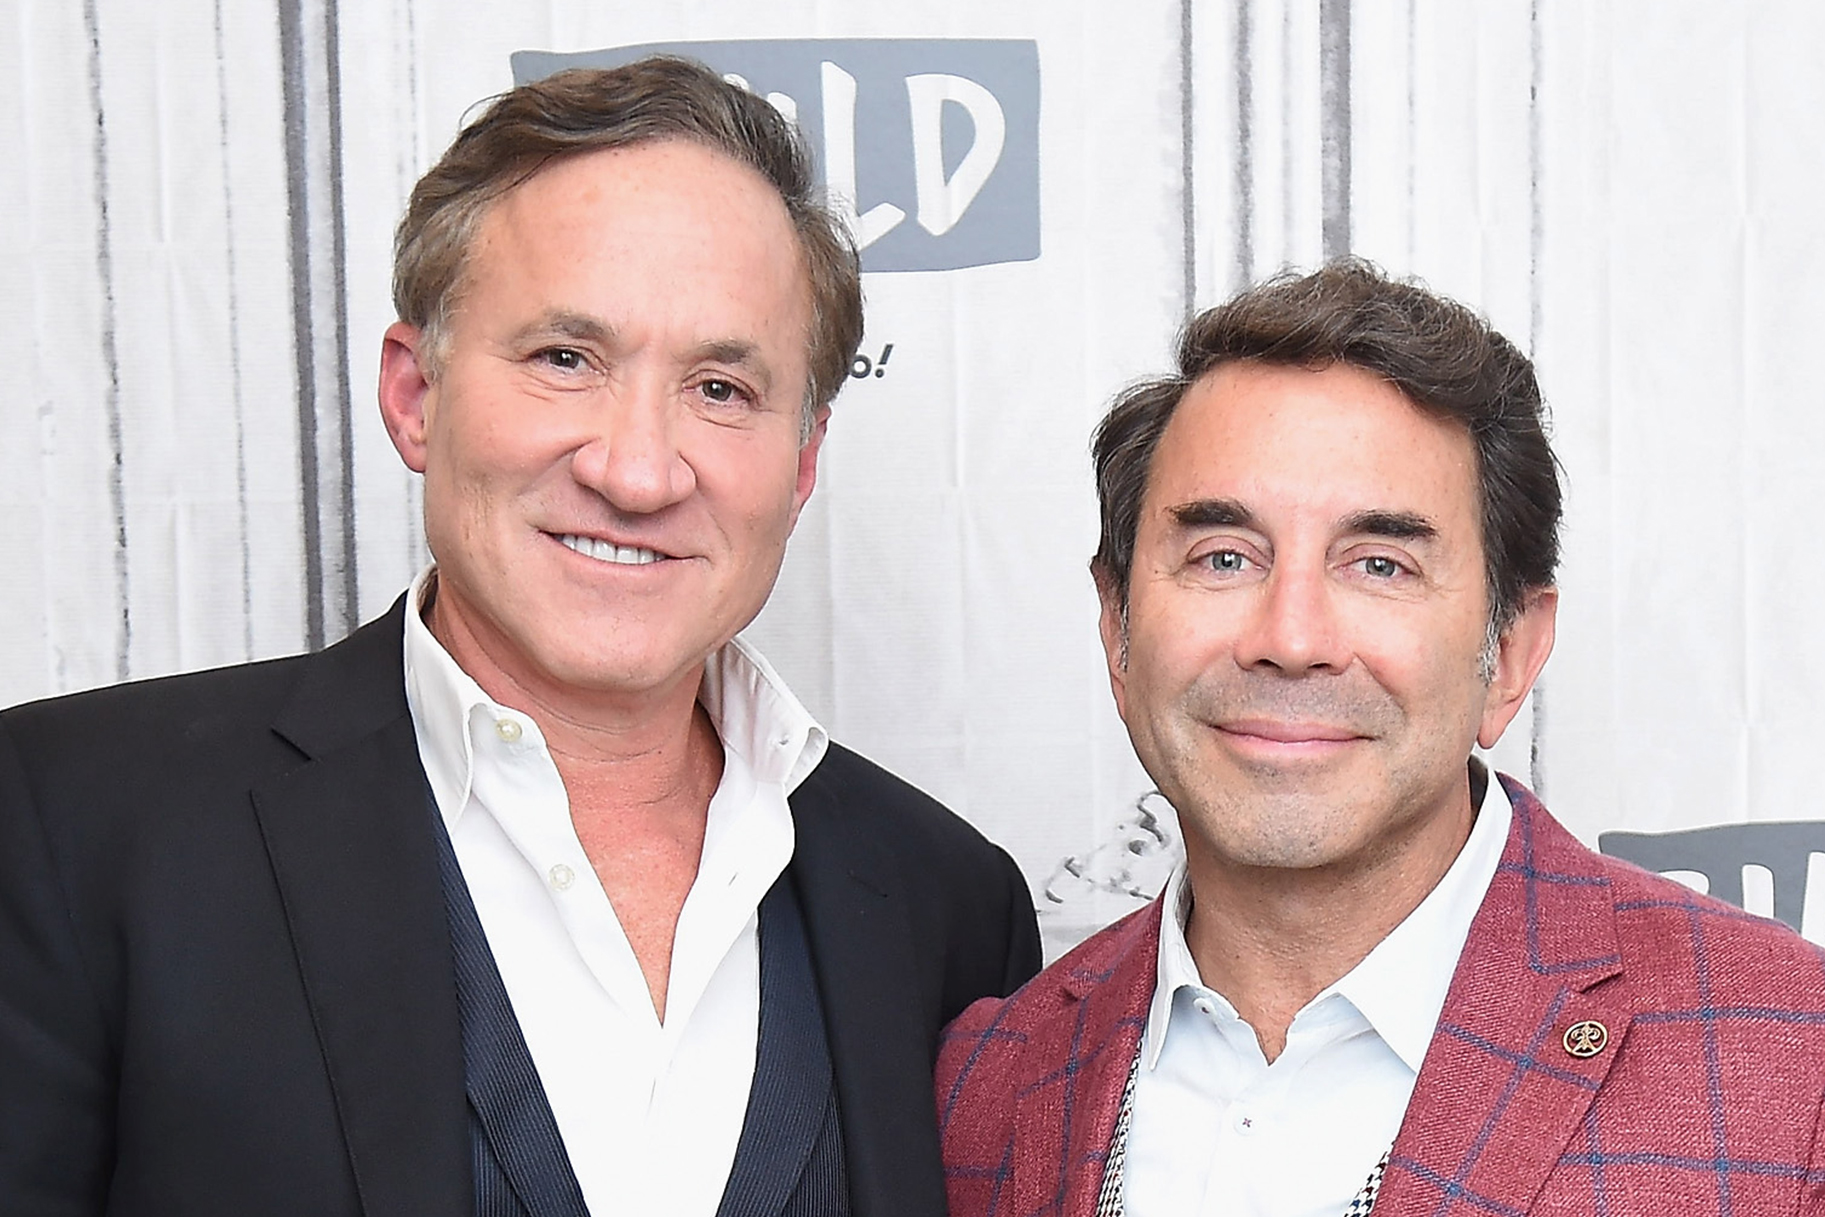 Terry Dubrow Paul Nassif Nose Jobs